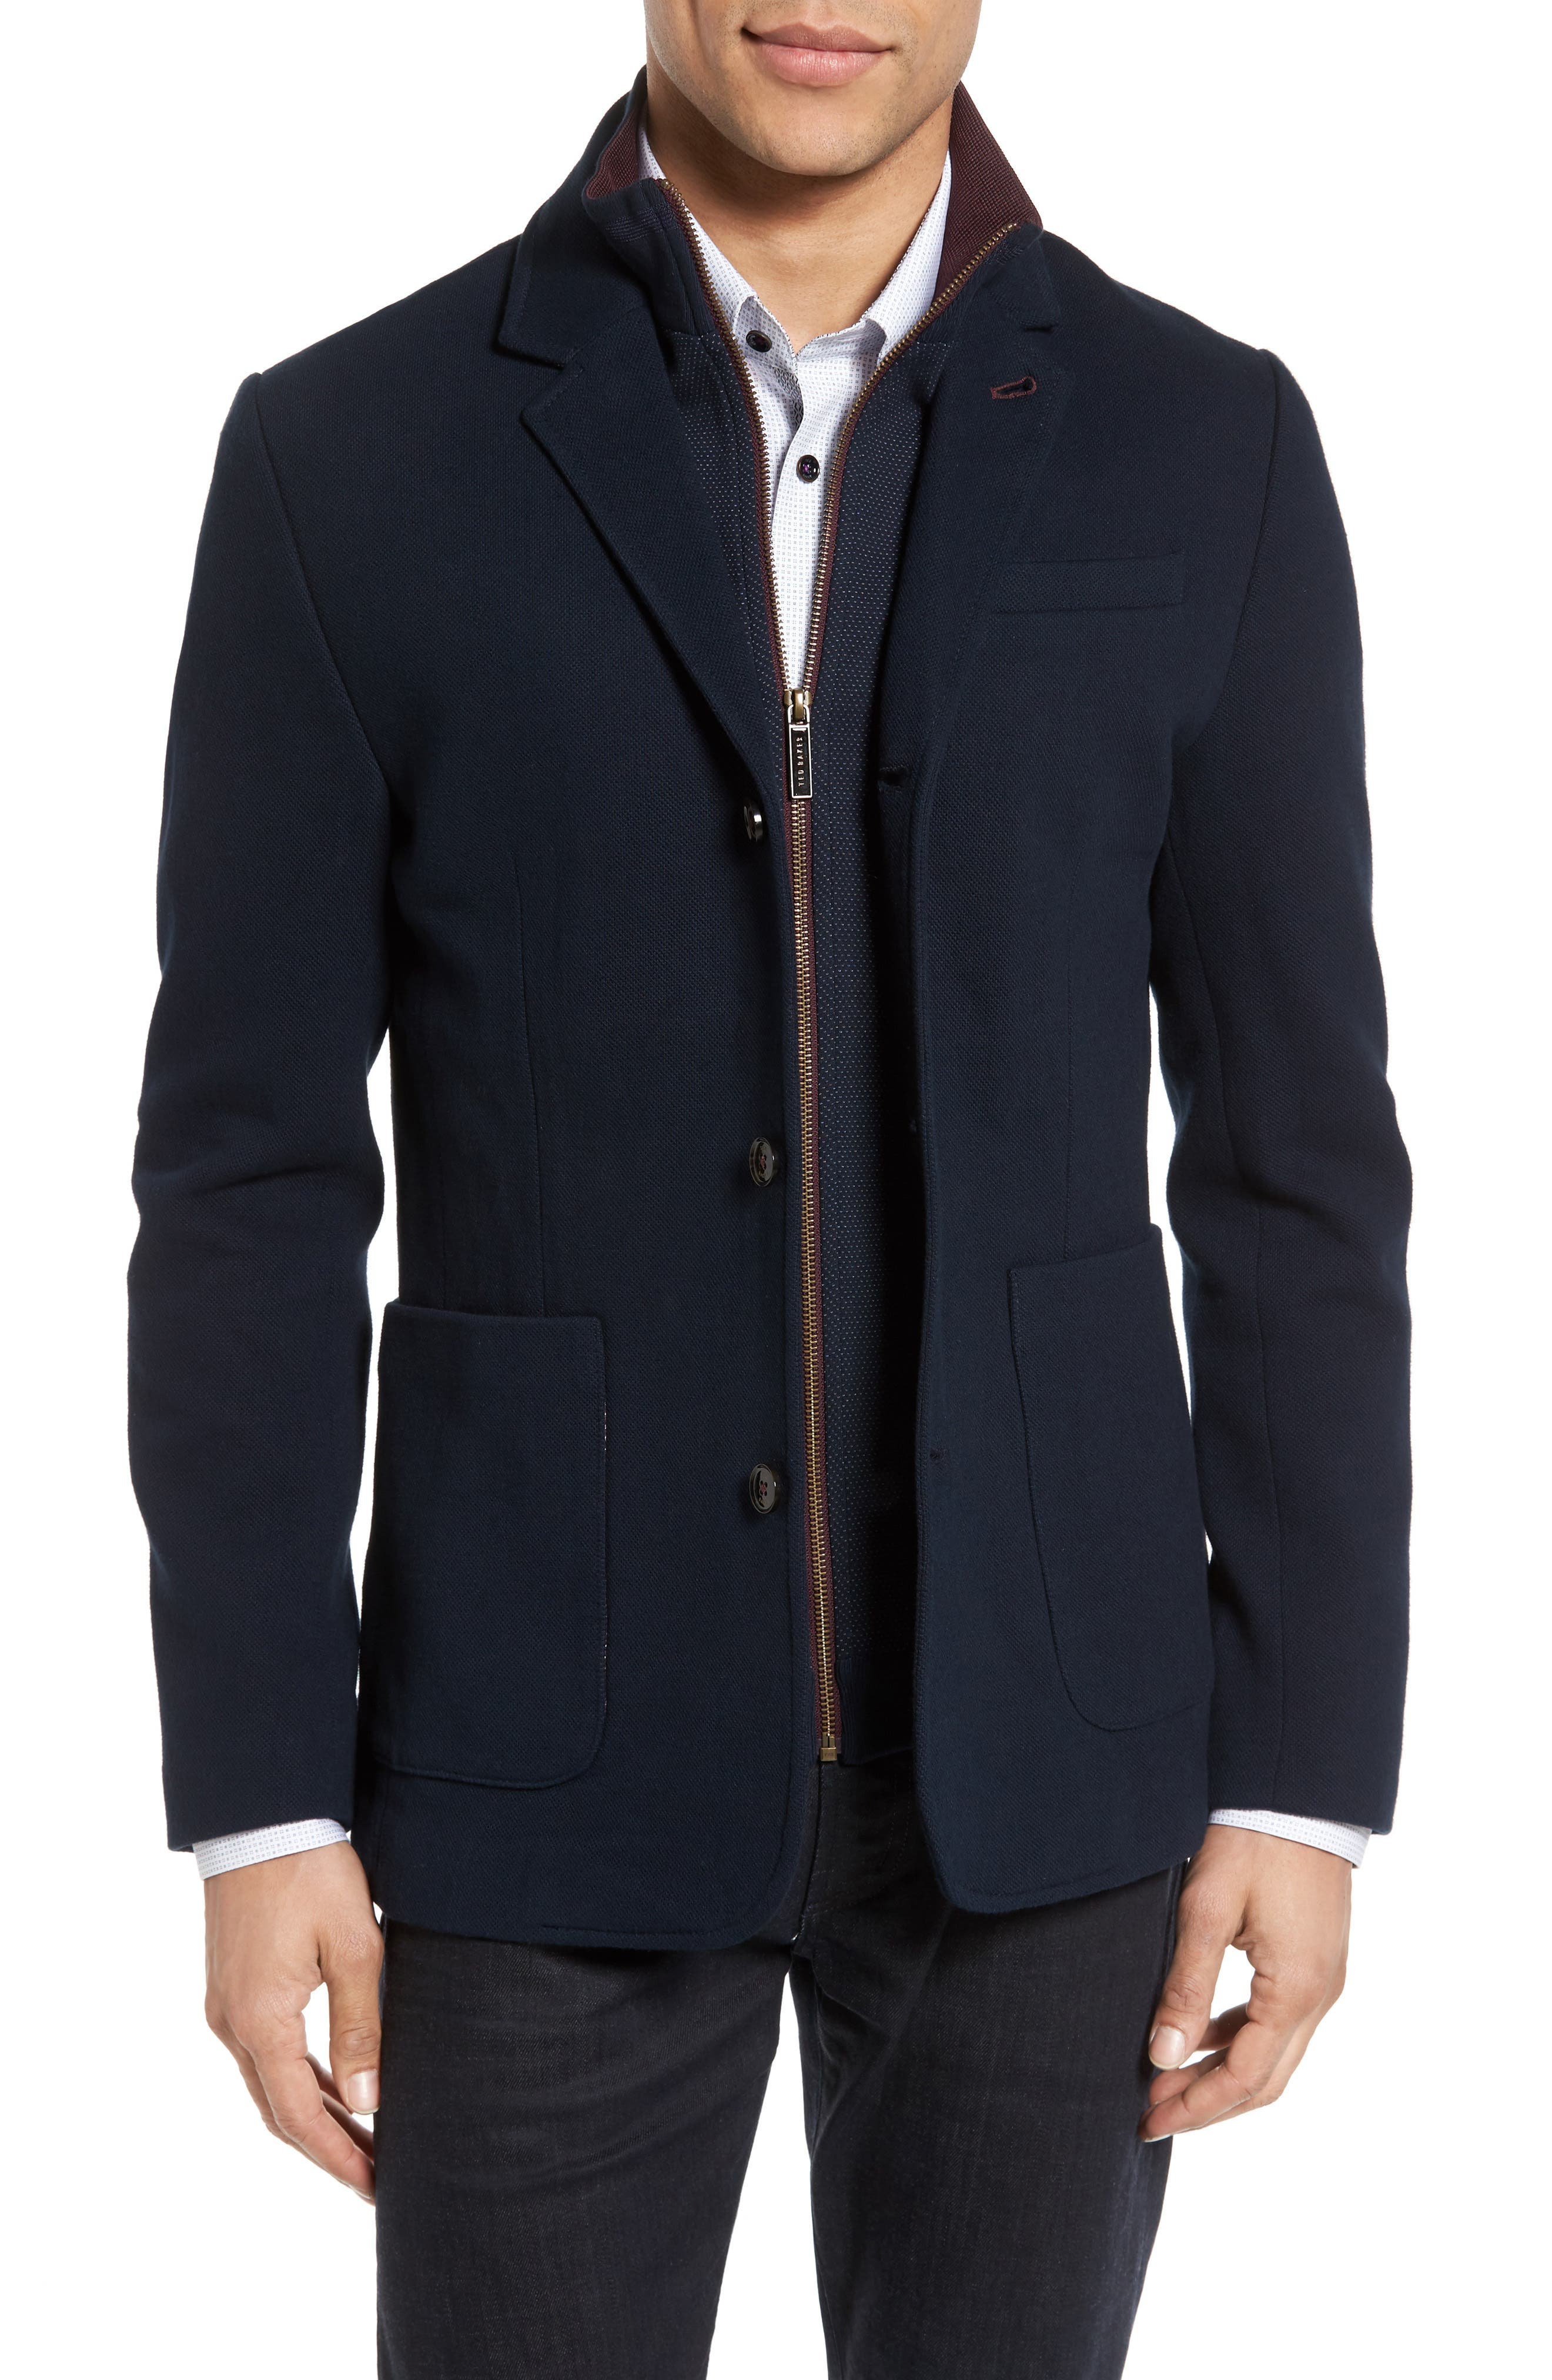 Knit Bib Inset Three-Button Jacket,                             Main thumbnail 1, color,                             Navy